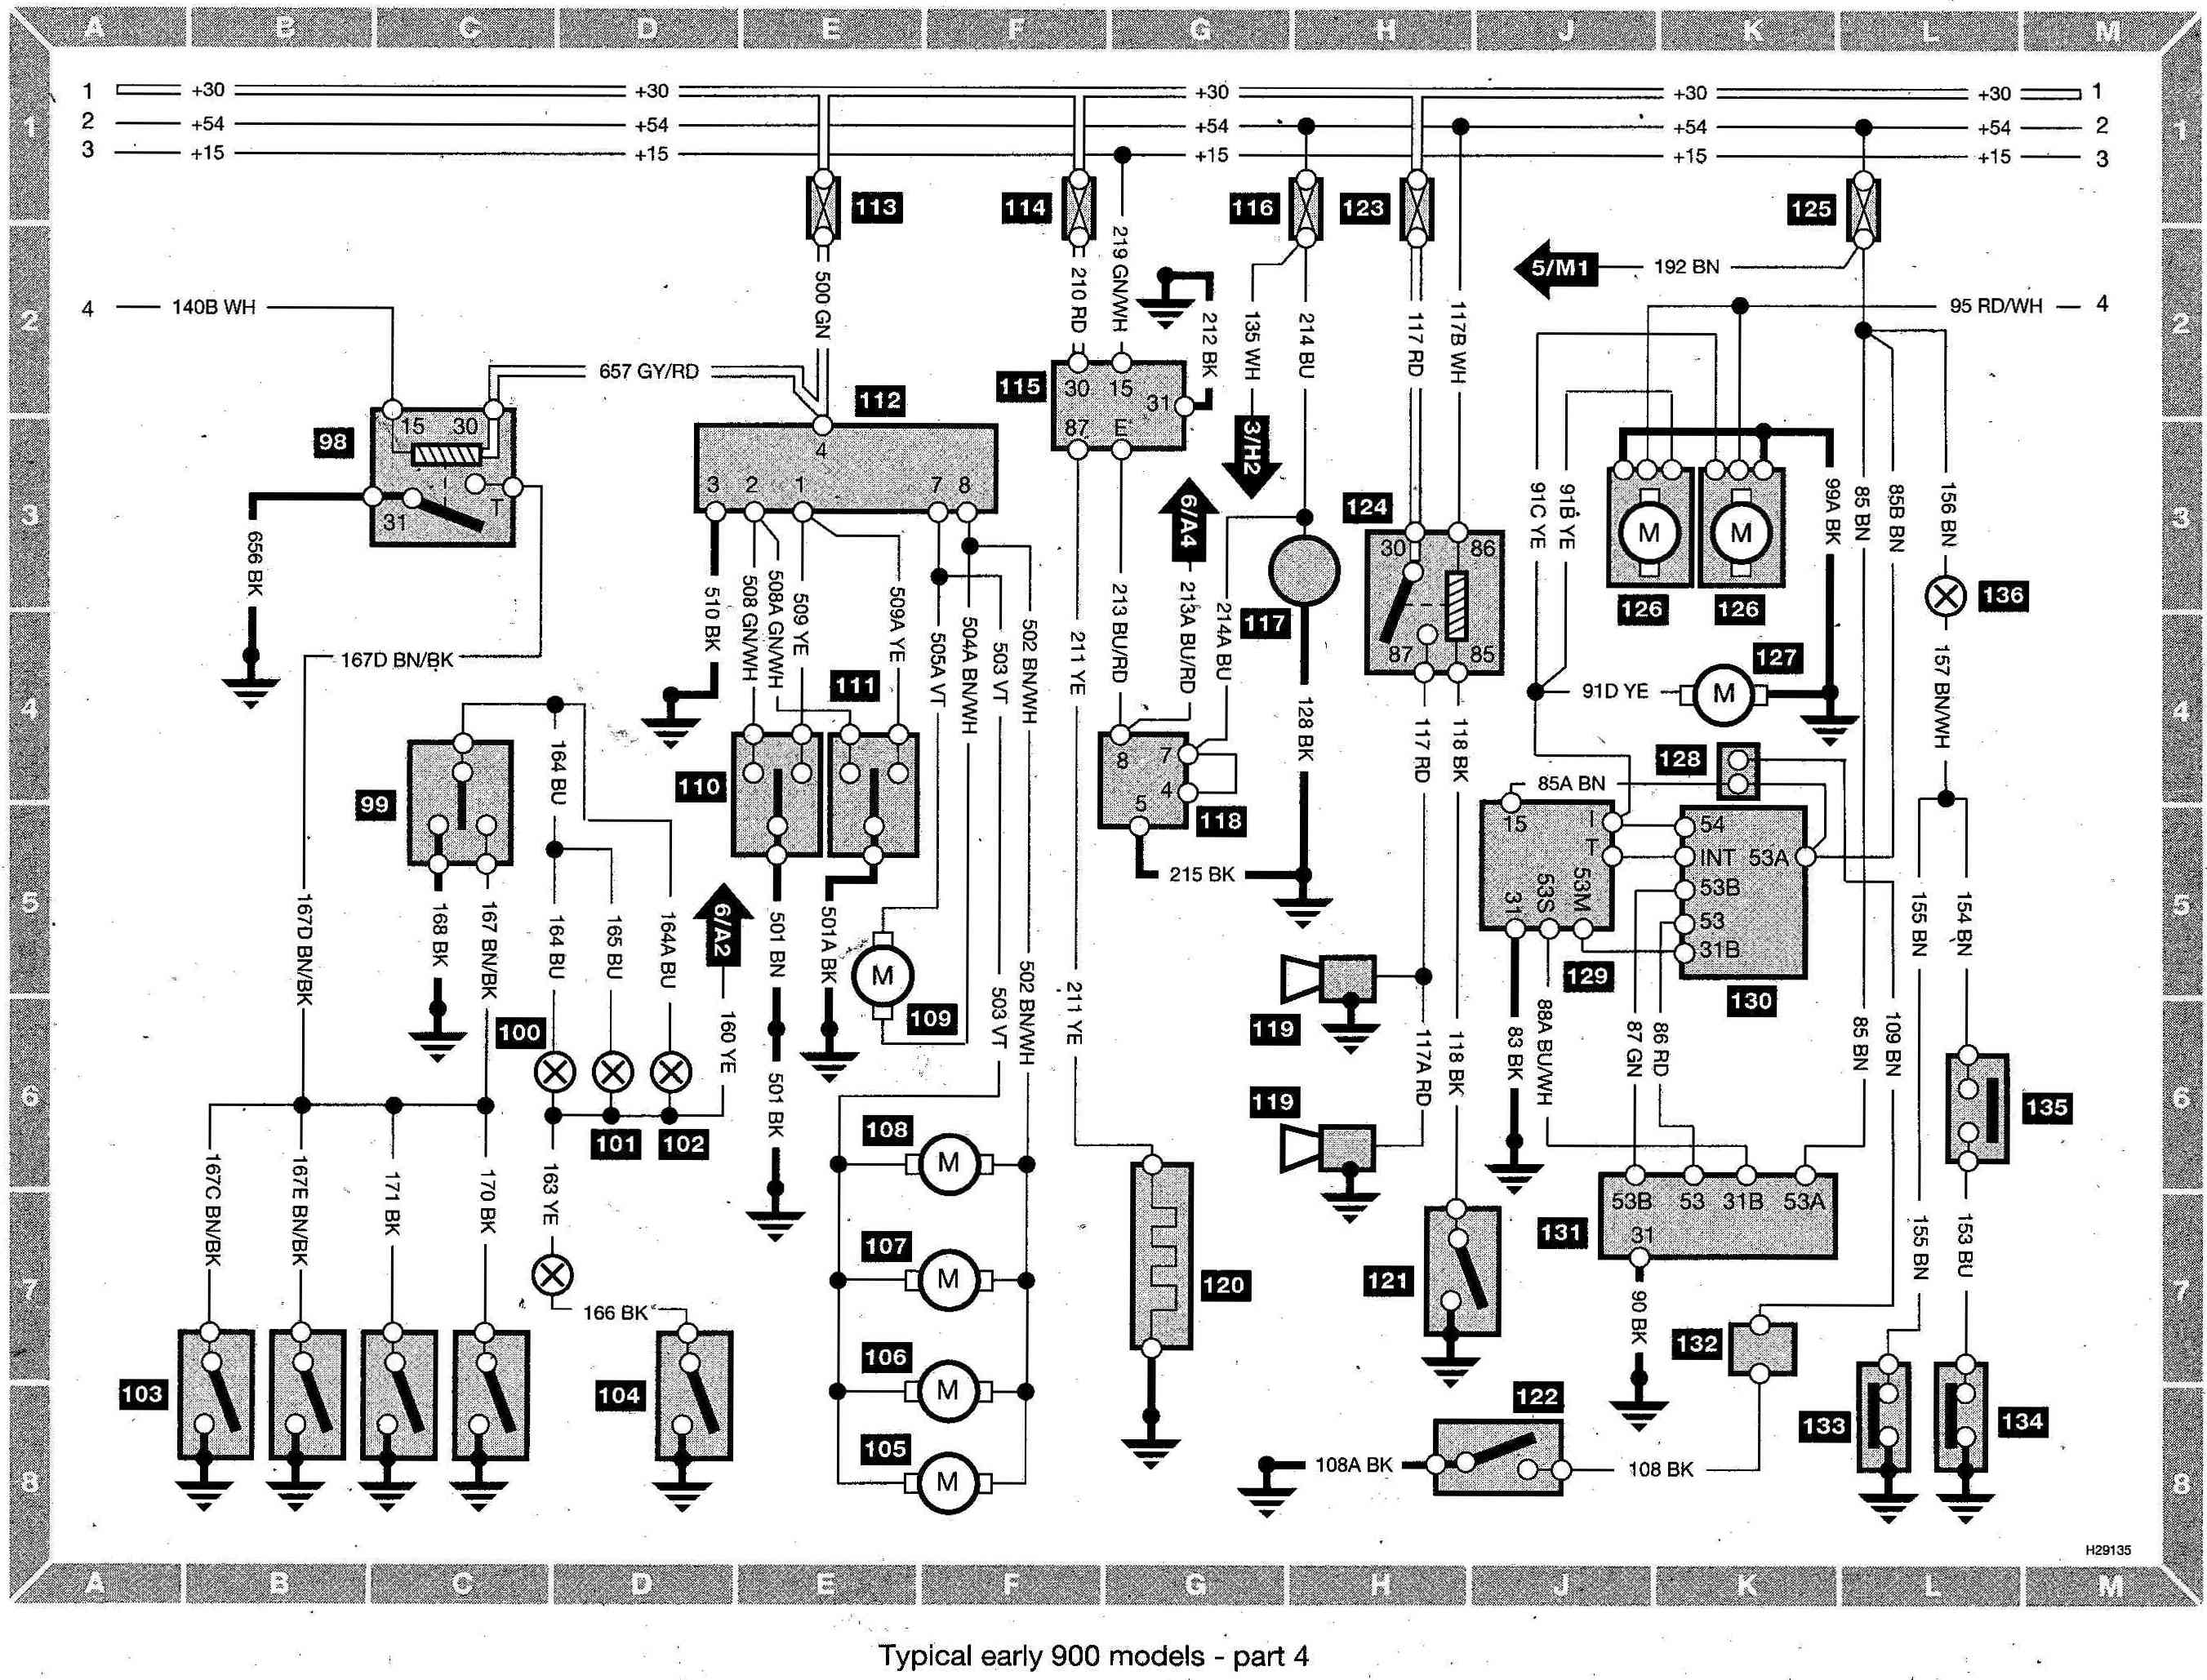 Saab Wiring Information | Wiring DiagramWiring Diagram - AutoScout24